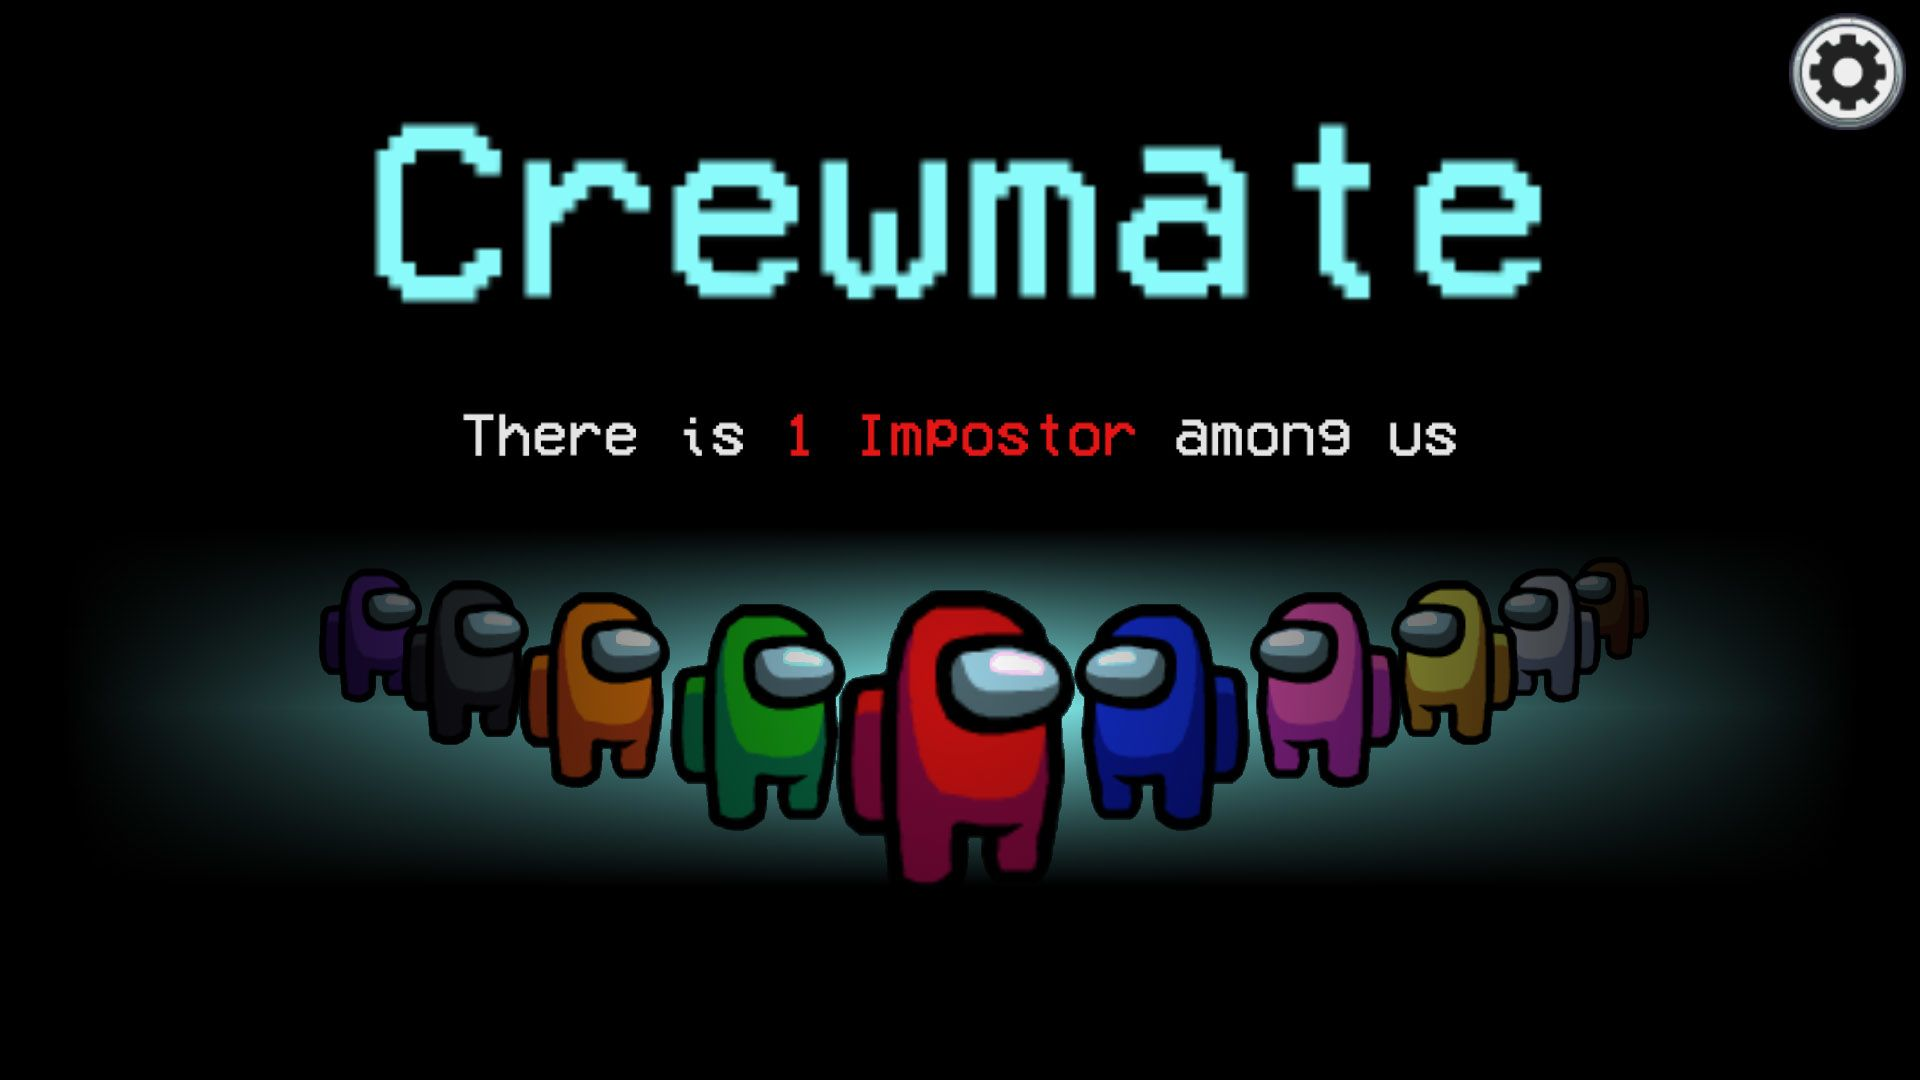 There is 1 Imposter Crewmate Among Us Wallpaper, HD Games 4K Wallpapers, Image, Photos and Backgrounds